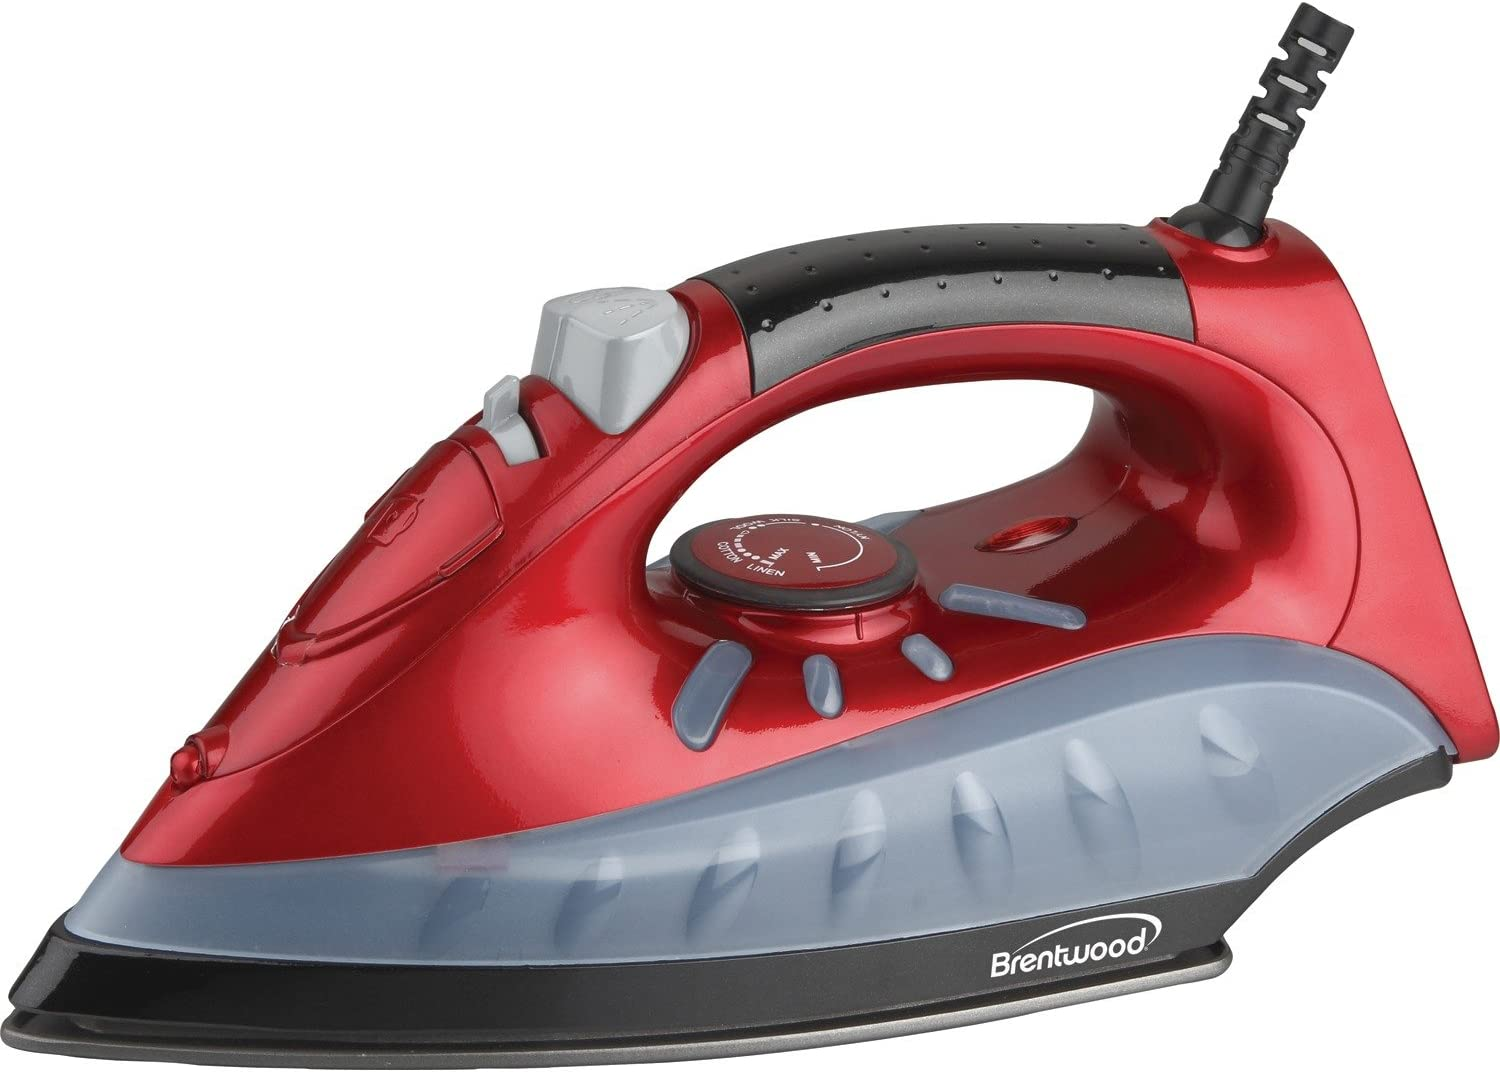 Brentwood MPI-61 Non-Stick Steam Iron Red